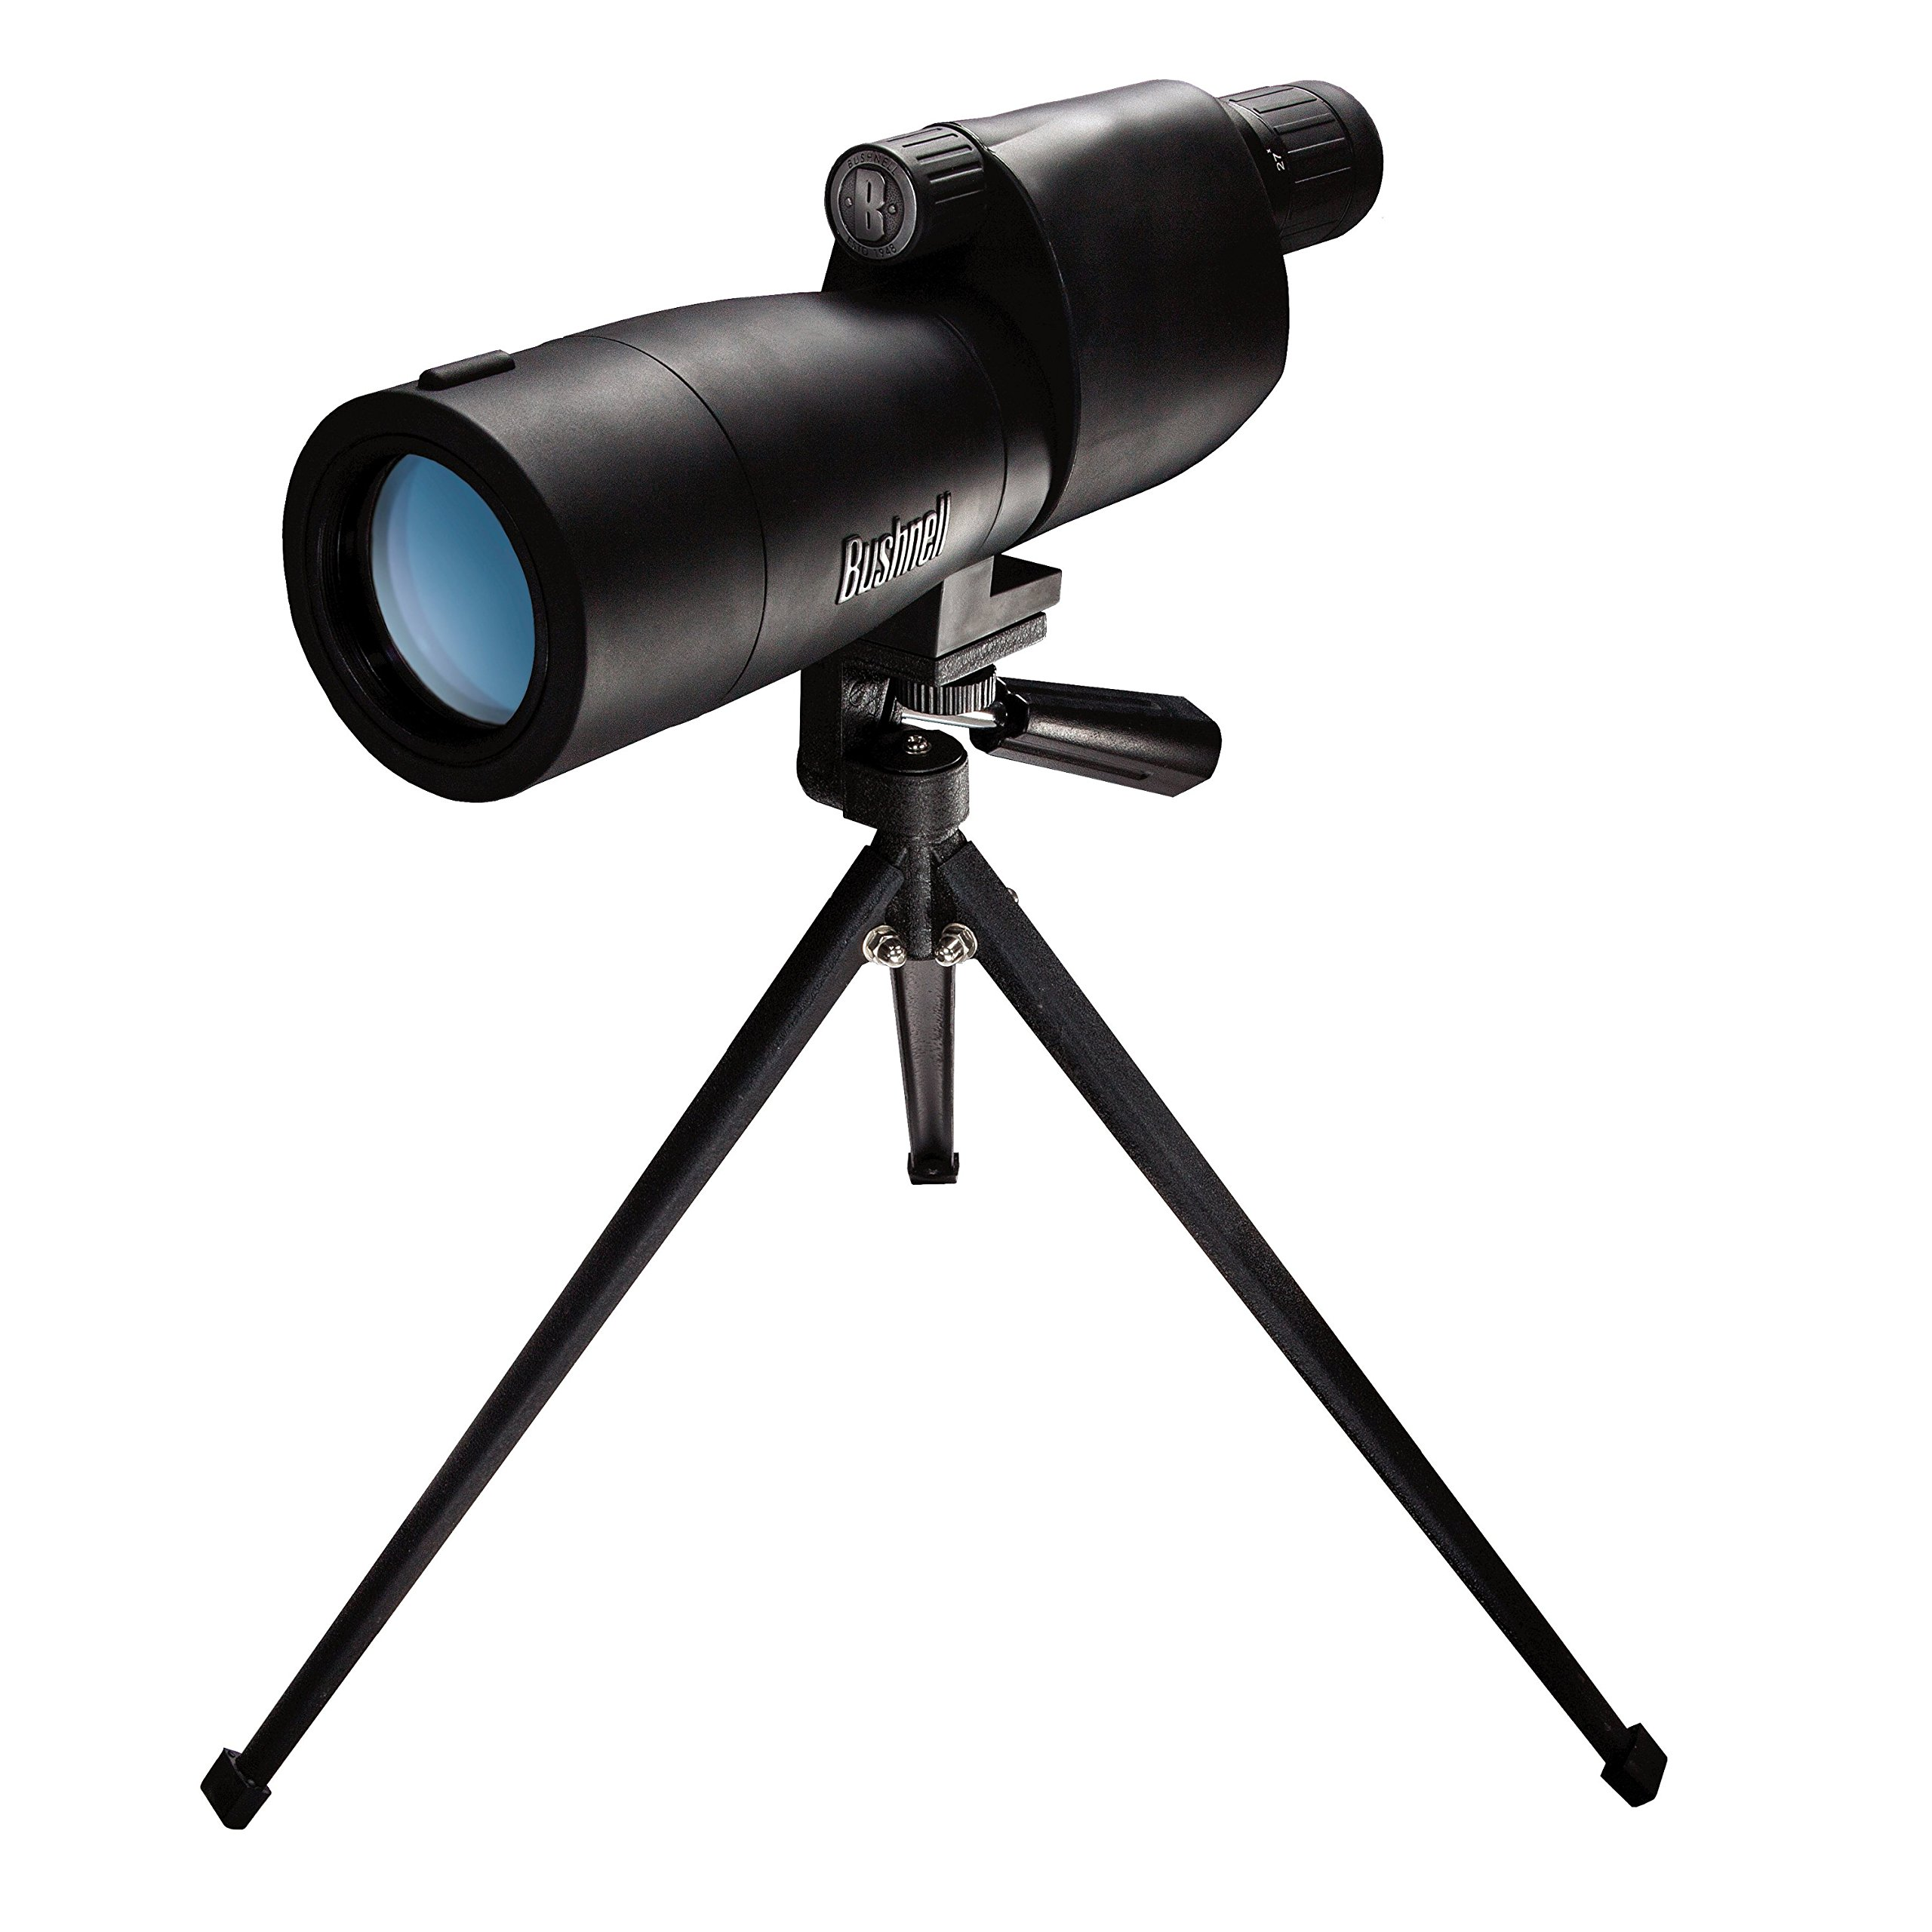 Bushnell Sentry 18-36 x 50mm Porro Prism Waterproof/Fogproof Spotting Scope with Tabletop Tripod, Black by Bushnell